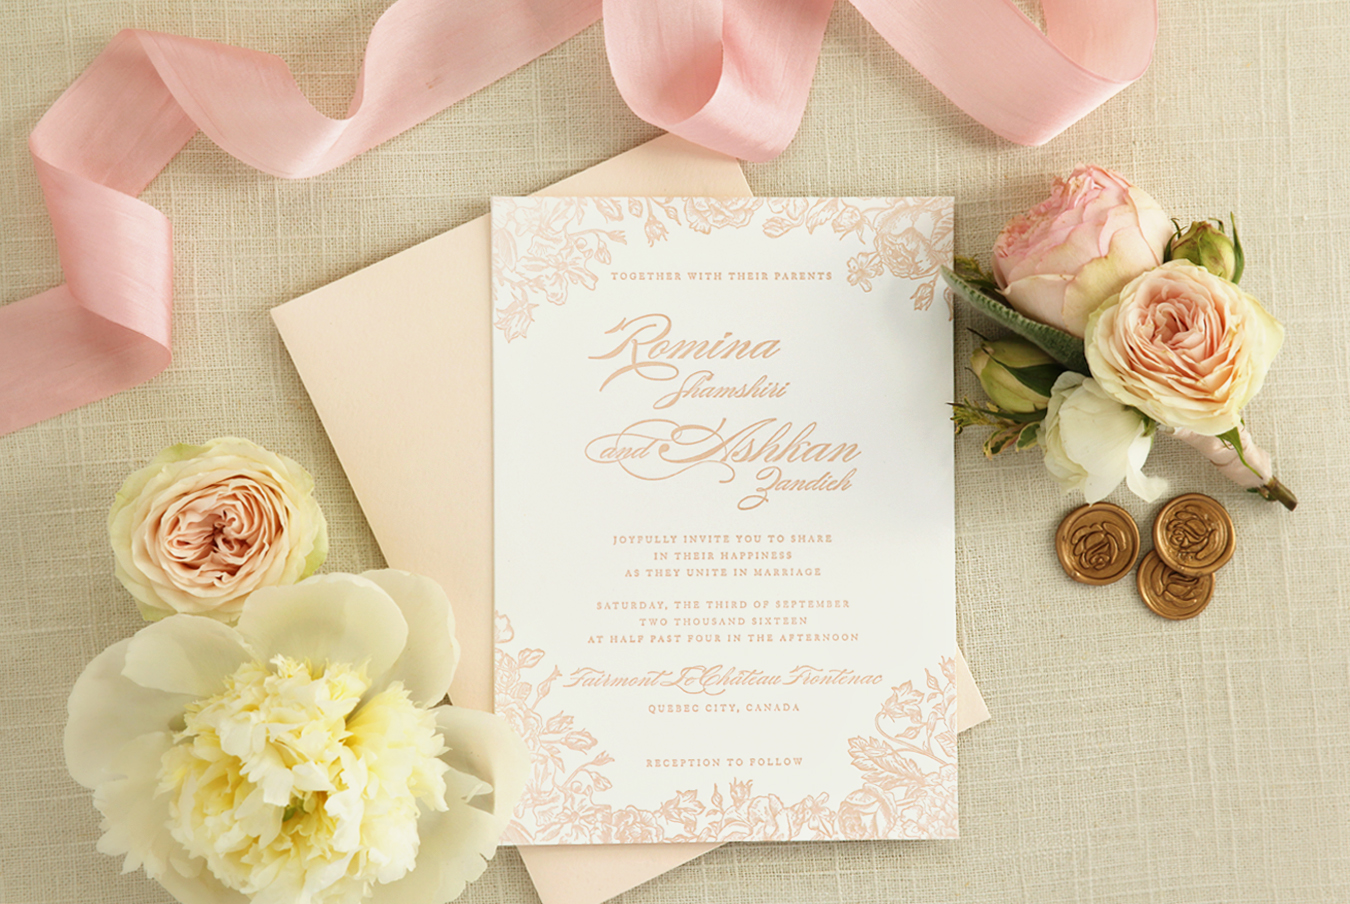 blush pink letterpress wedding invitations - Blush Wedding Invitations